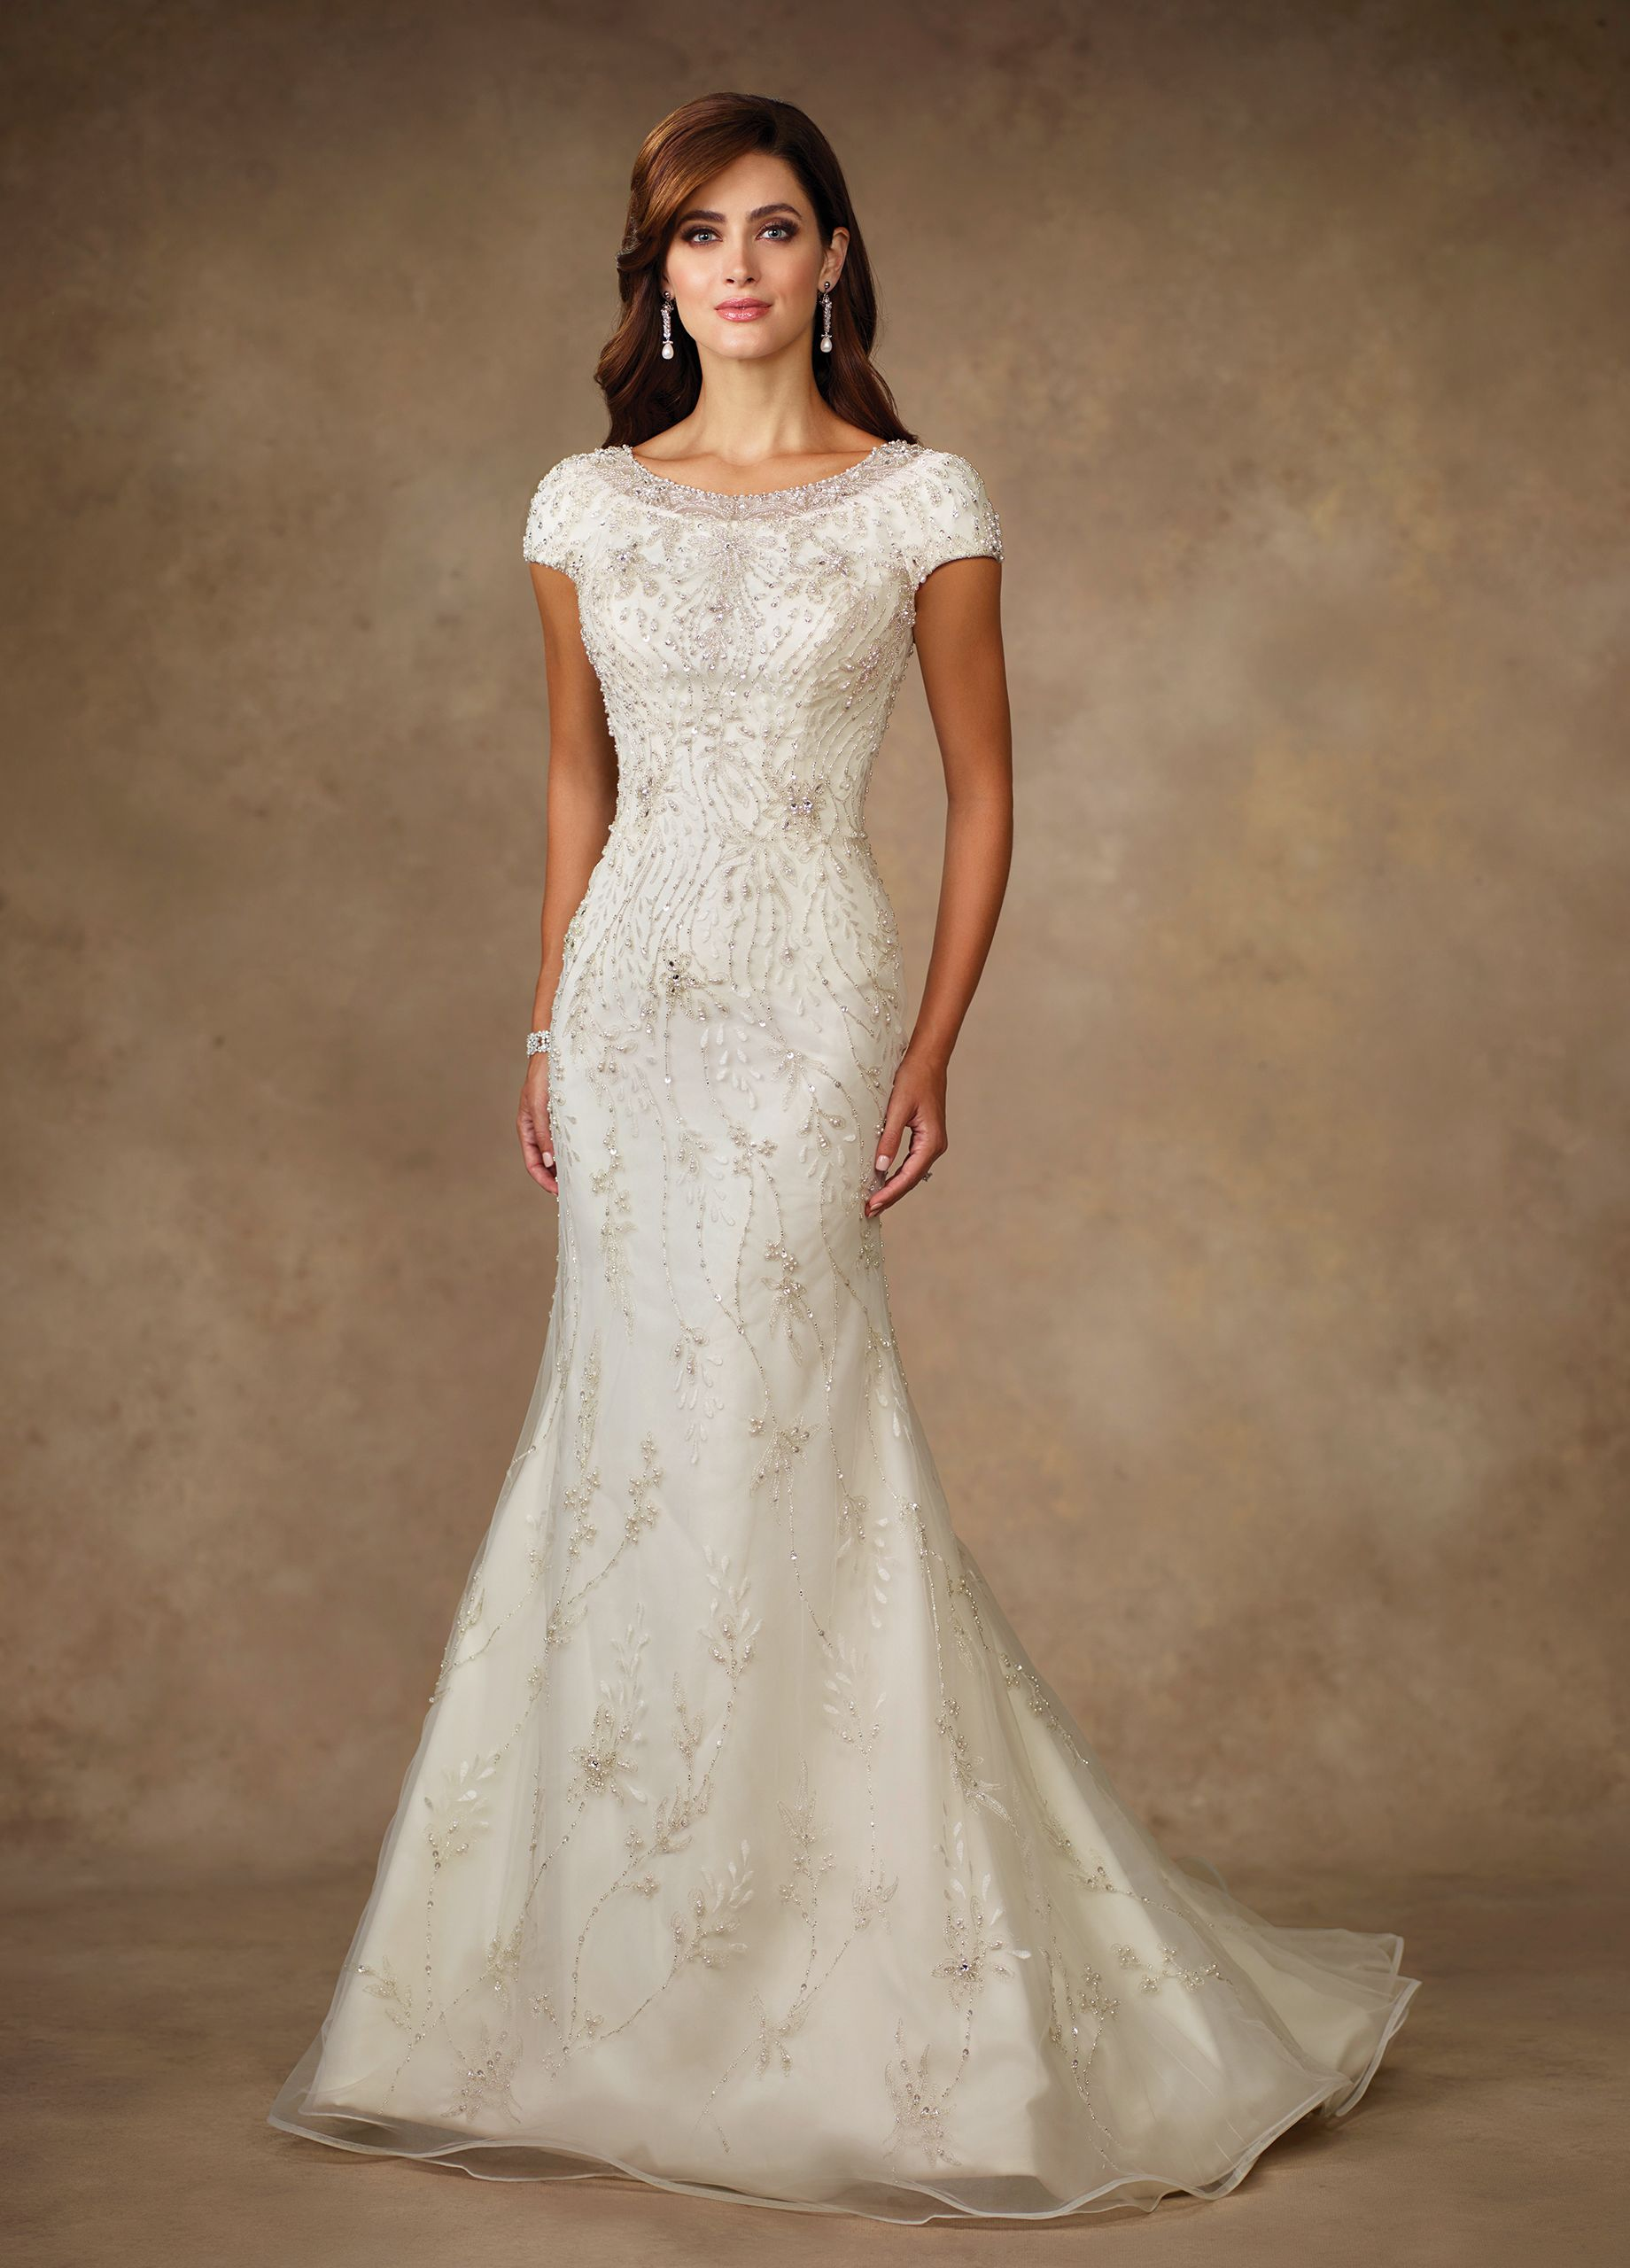 TR11706 - Hand-pattern beaded and embroidered motif on tulle over organza and soft satin trumpet gown with cap sleeves, front and back bateau necklines trimmed with elaborately hand-beaded illusion, dropped waist, covered buttons down back, chapel length train.